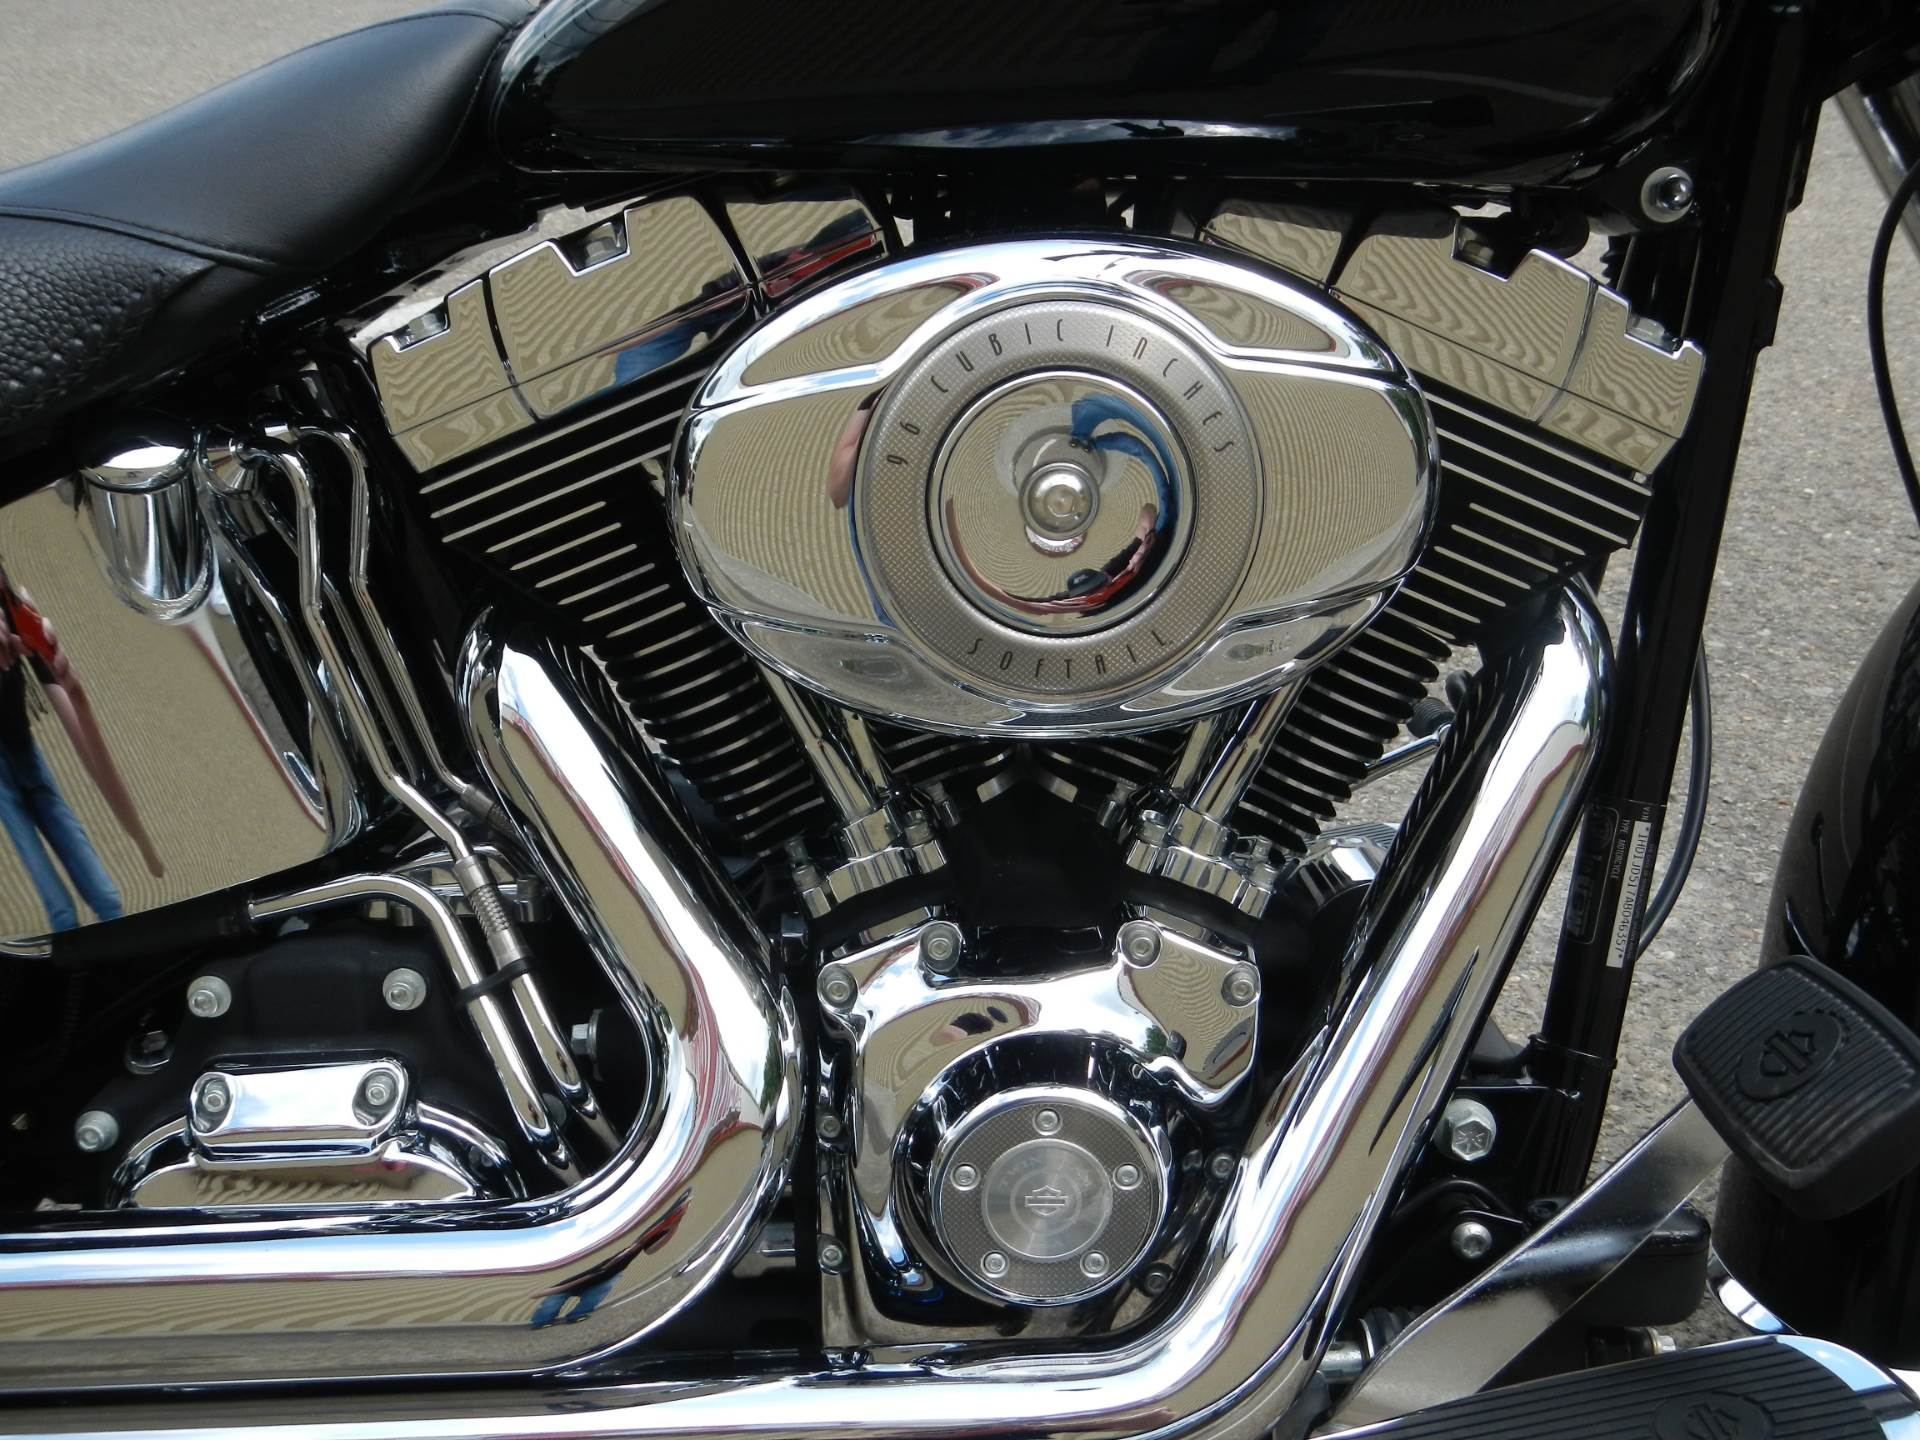 2010 Harley-Davidson Softail® Deluxe in Nutter Fort, West Virginia